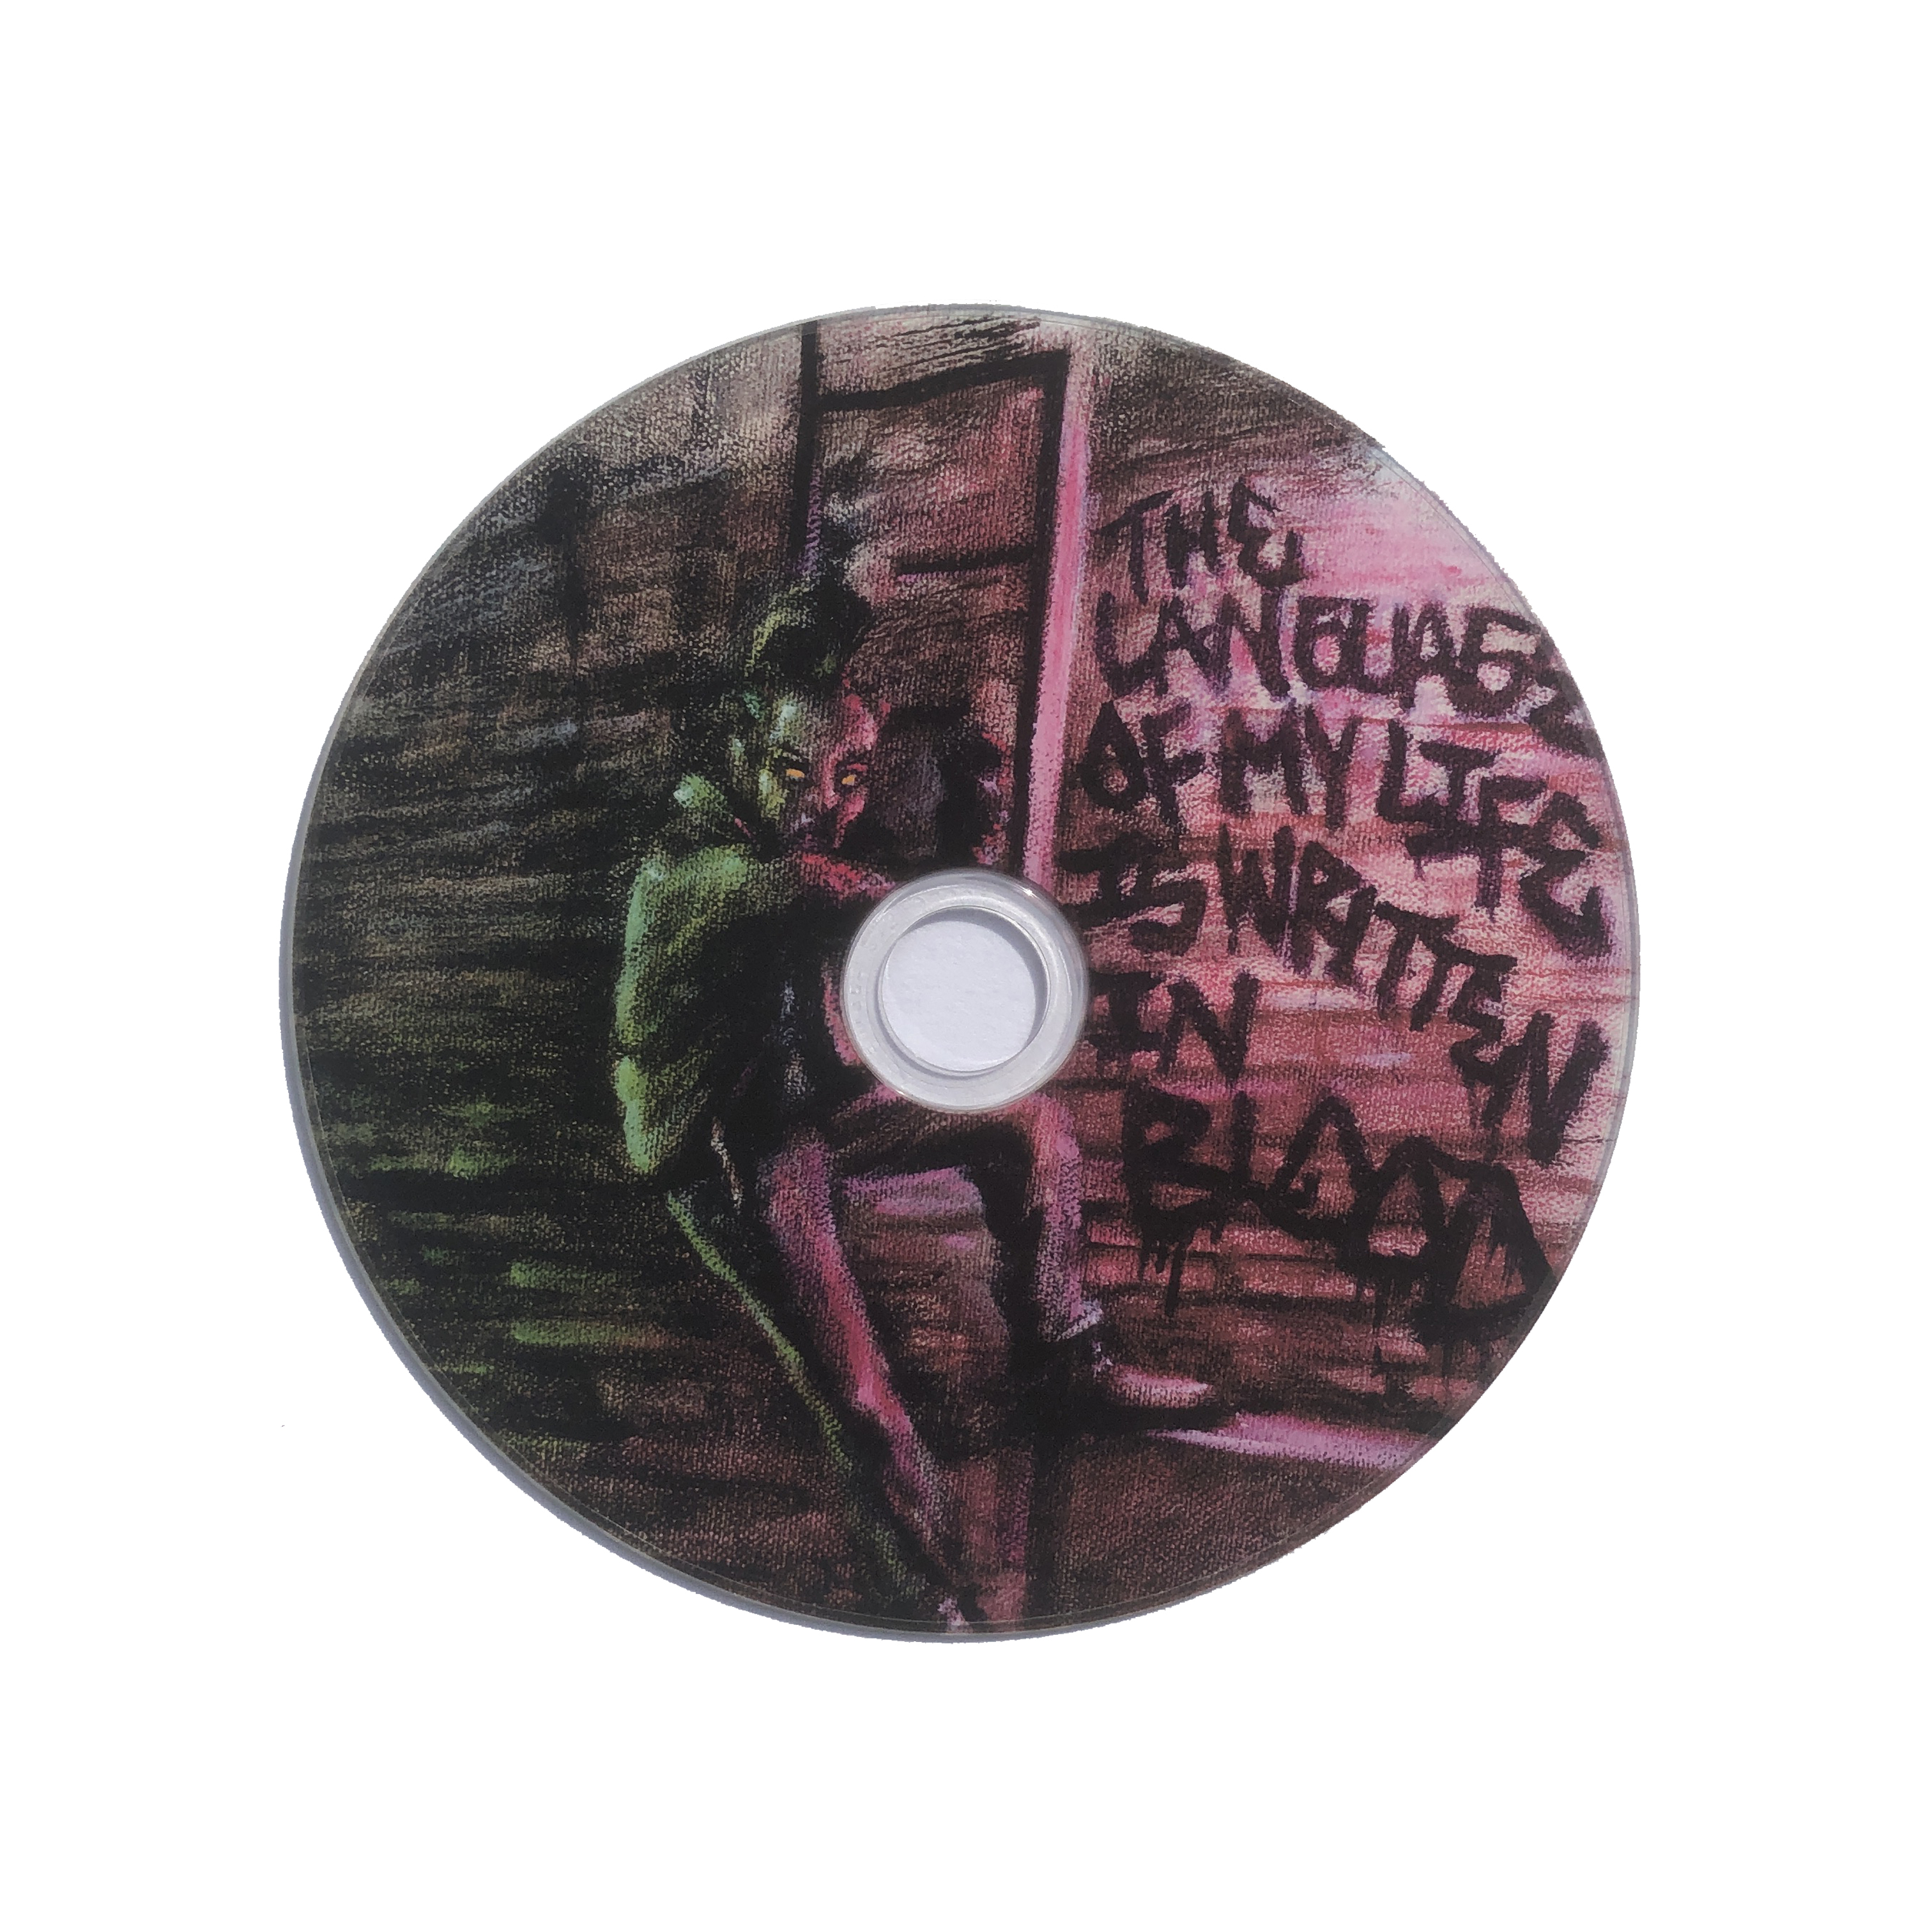 Real World - The Language of My Life... Compact Disc